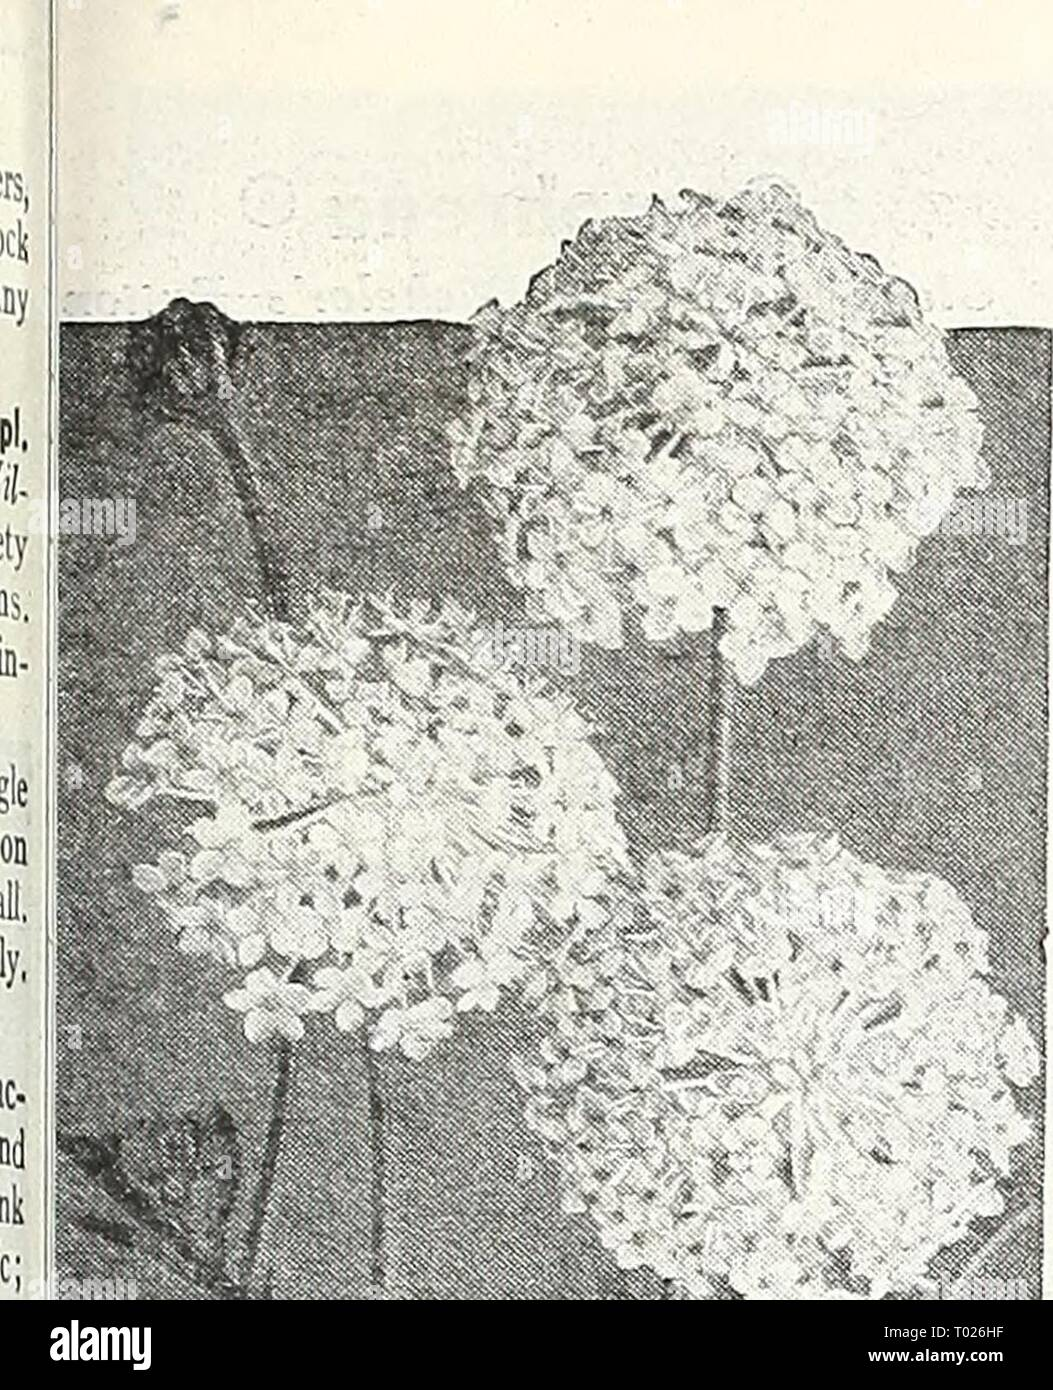 Dreer's garden book for 1947 . dreersgardenbook1947henr Year: 1947  Didiscus—Blue Lace Flower Didiscus Blue Lace Floiver @ 2311 Coeruleus. A very interesting and showy Australian annual bear- ing lacy, light lavender flower heads from July until frost. Excellent for borders and cutting. Grows IS inches high. Pkt. 10c; large pkt. 40c. Digitalis—Foxglove ® ® Handsome biennials producing state- ly flower spikes during June. i-S ft. Gloxiniaeflora 23 I 7 Purple. Pkt. 10c ; large pkt. 40c. 2318 Rose. Pkt. 10c; large pkt. 40c. 2319 White. Pkt. 10c; large pkt. 40c. 2320 Mixed Colors. Pkt. 10c; large  Stock Photo